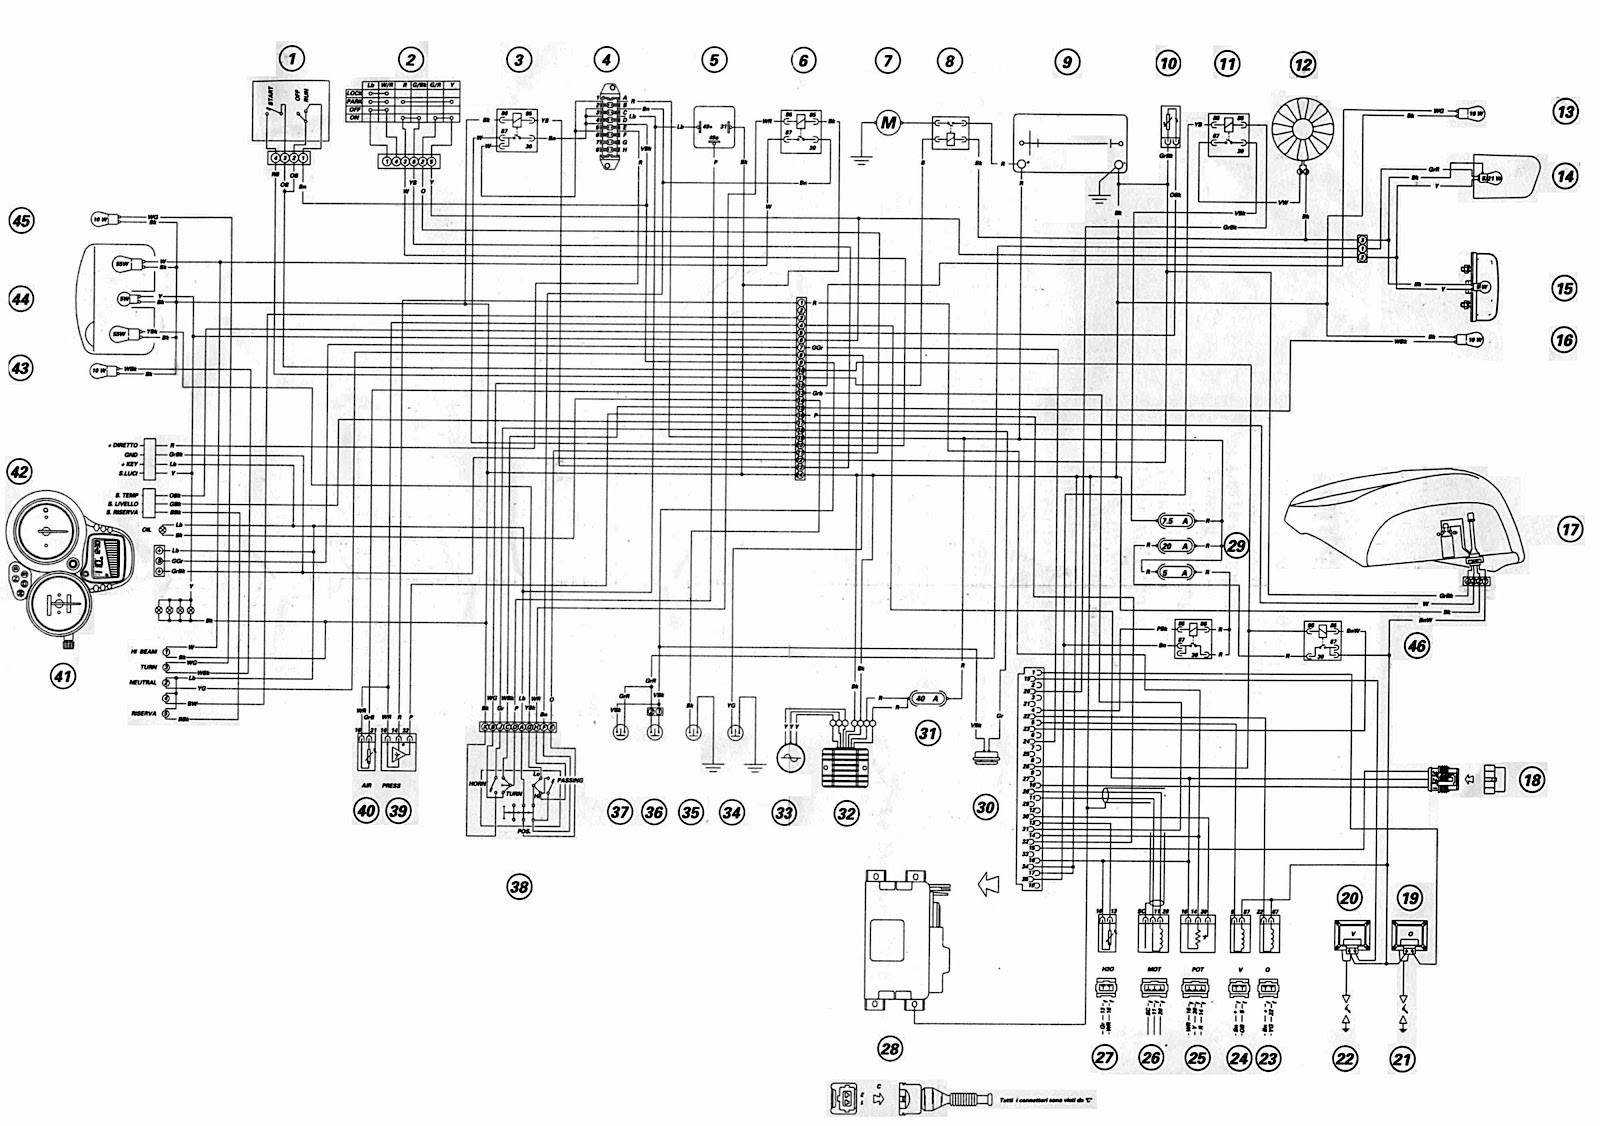 Unique 2004 r6 wiring diagram model electrical diagram ideas magnificent 2012 yamaha r6 wiring diagram photos electrical and asfbconference2016 Choice Image